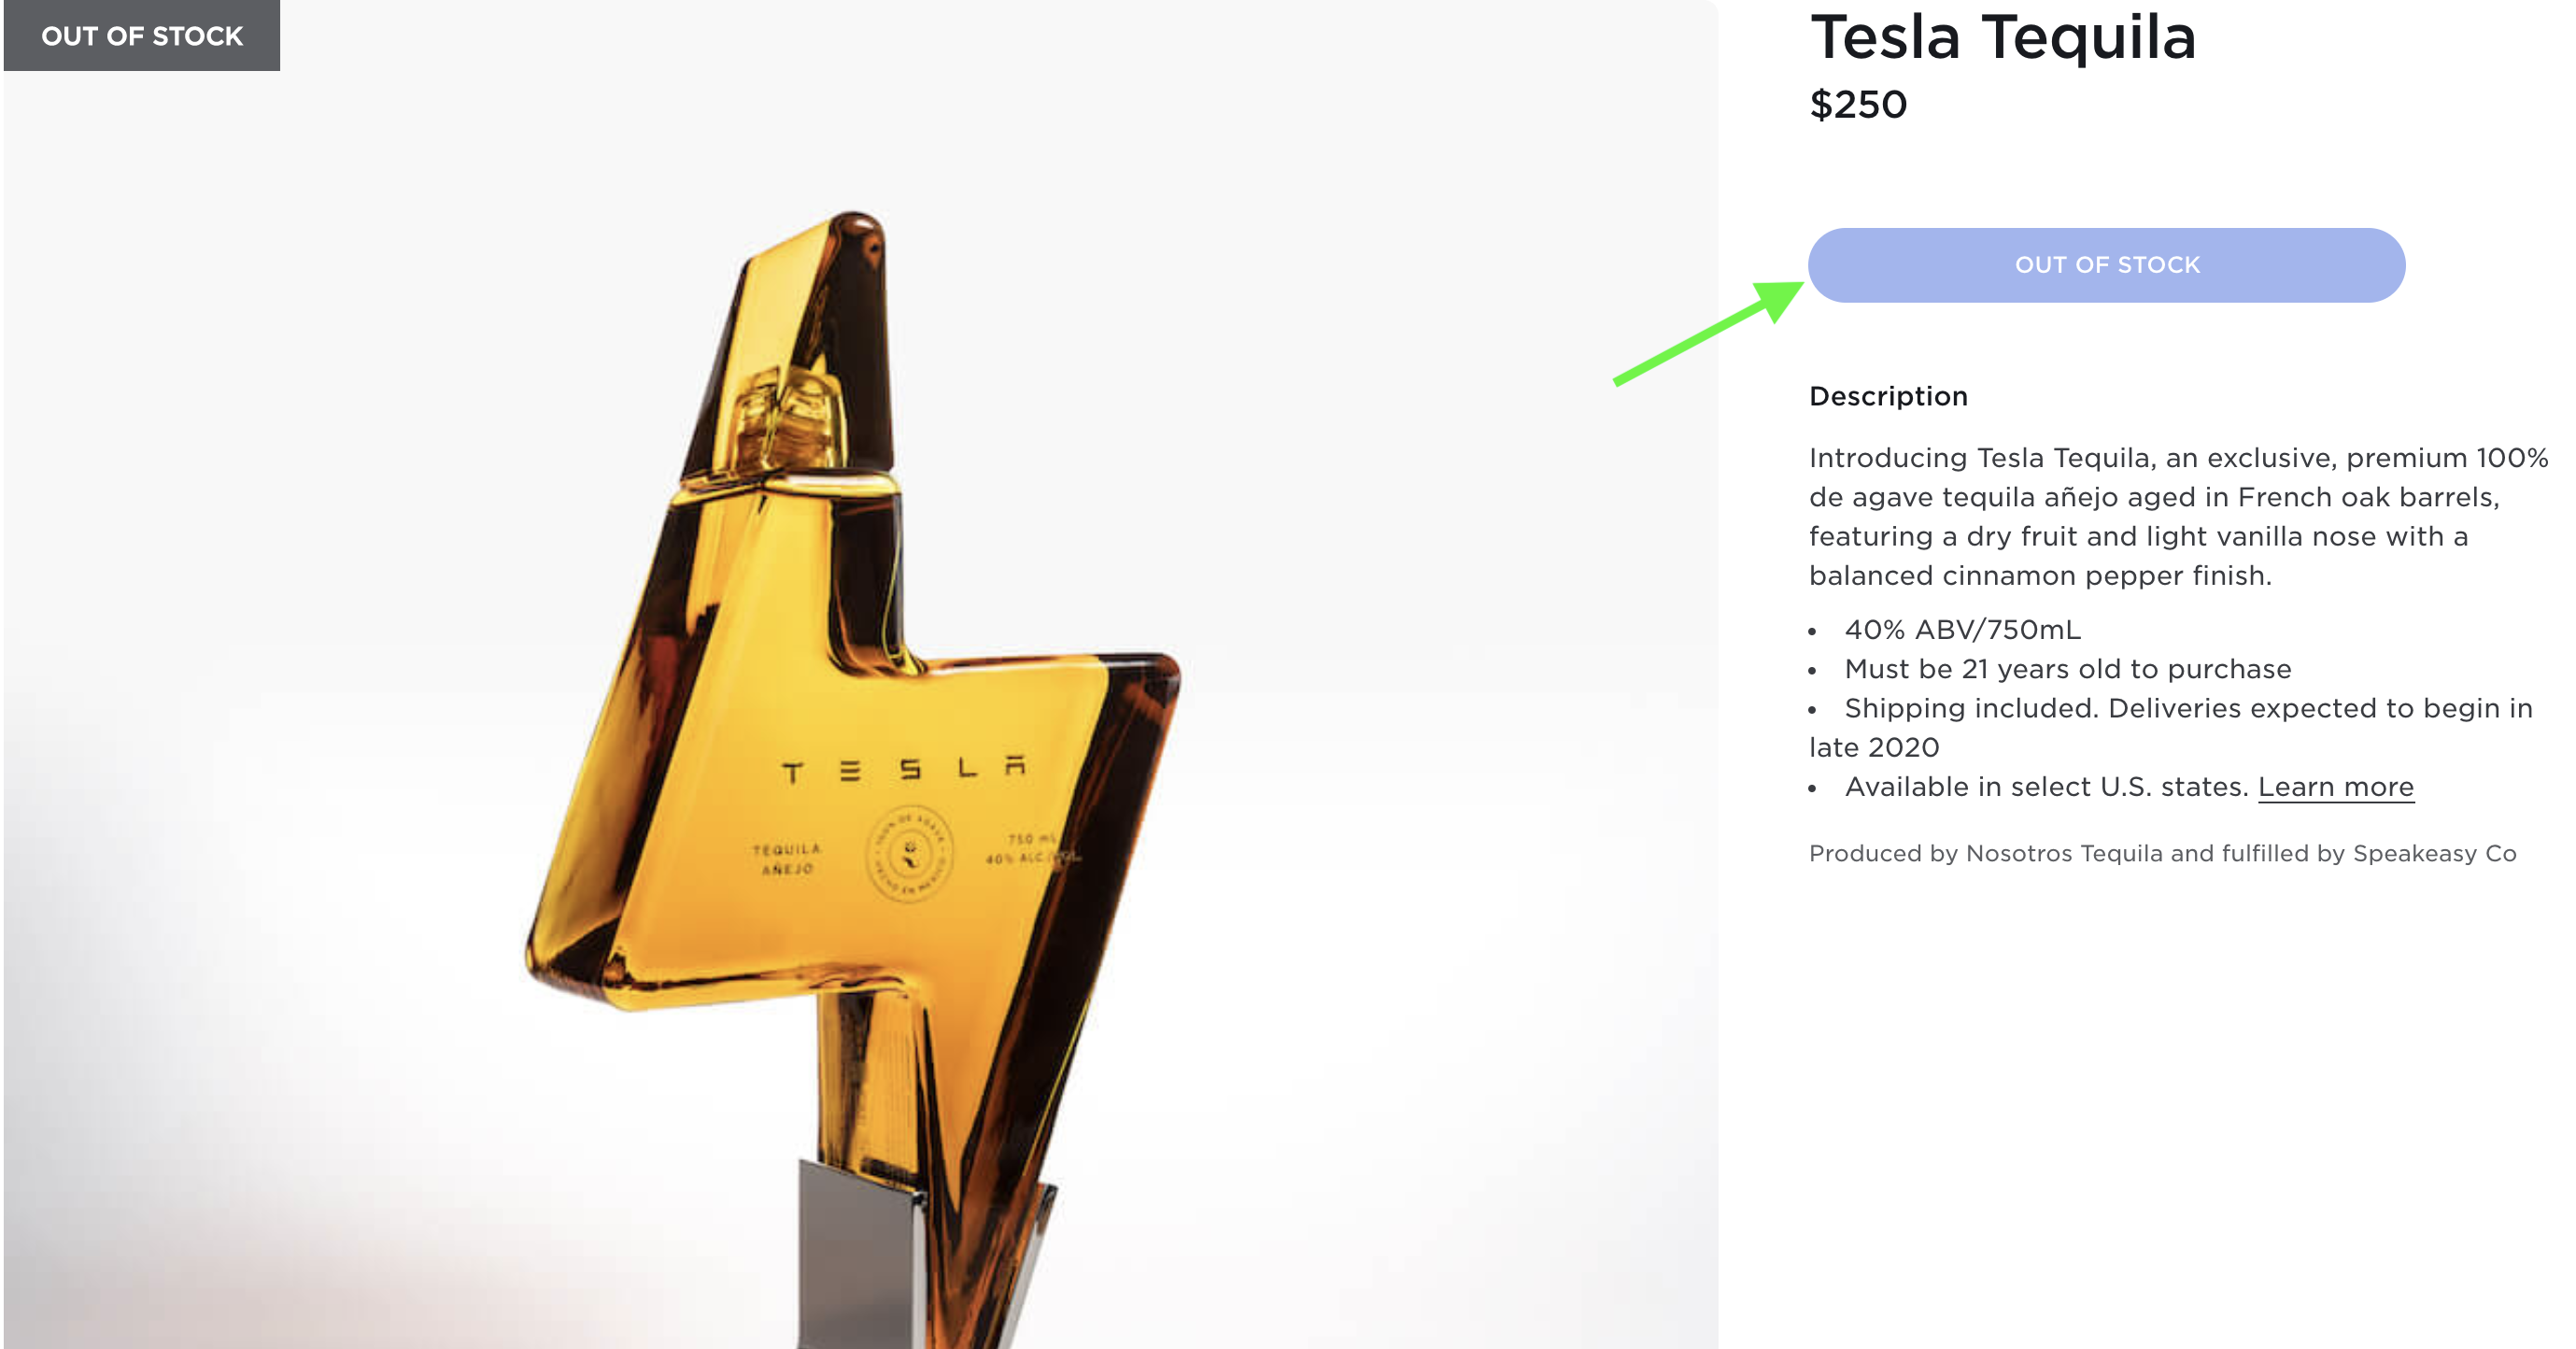 tesla-tequila-out-of-stock